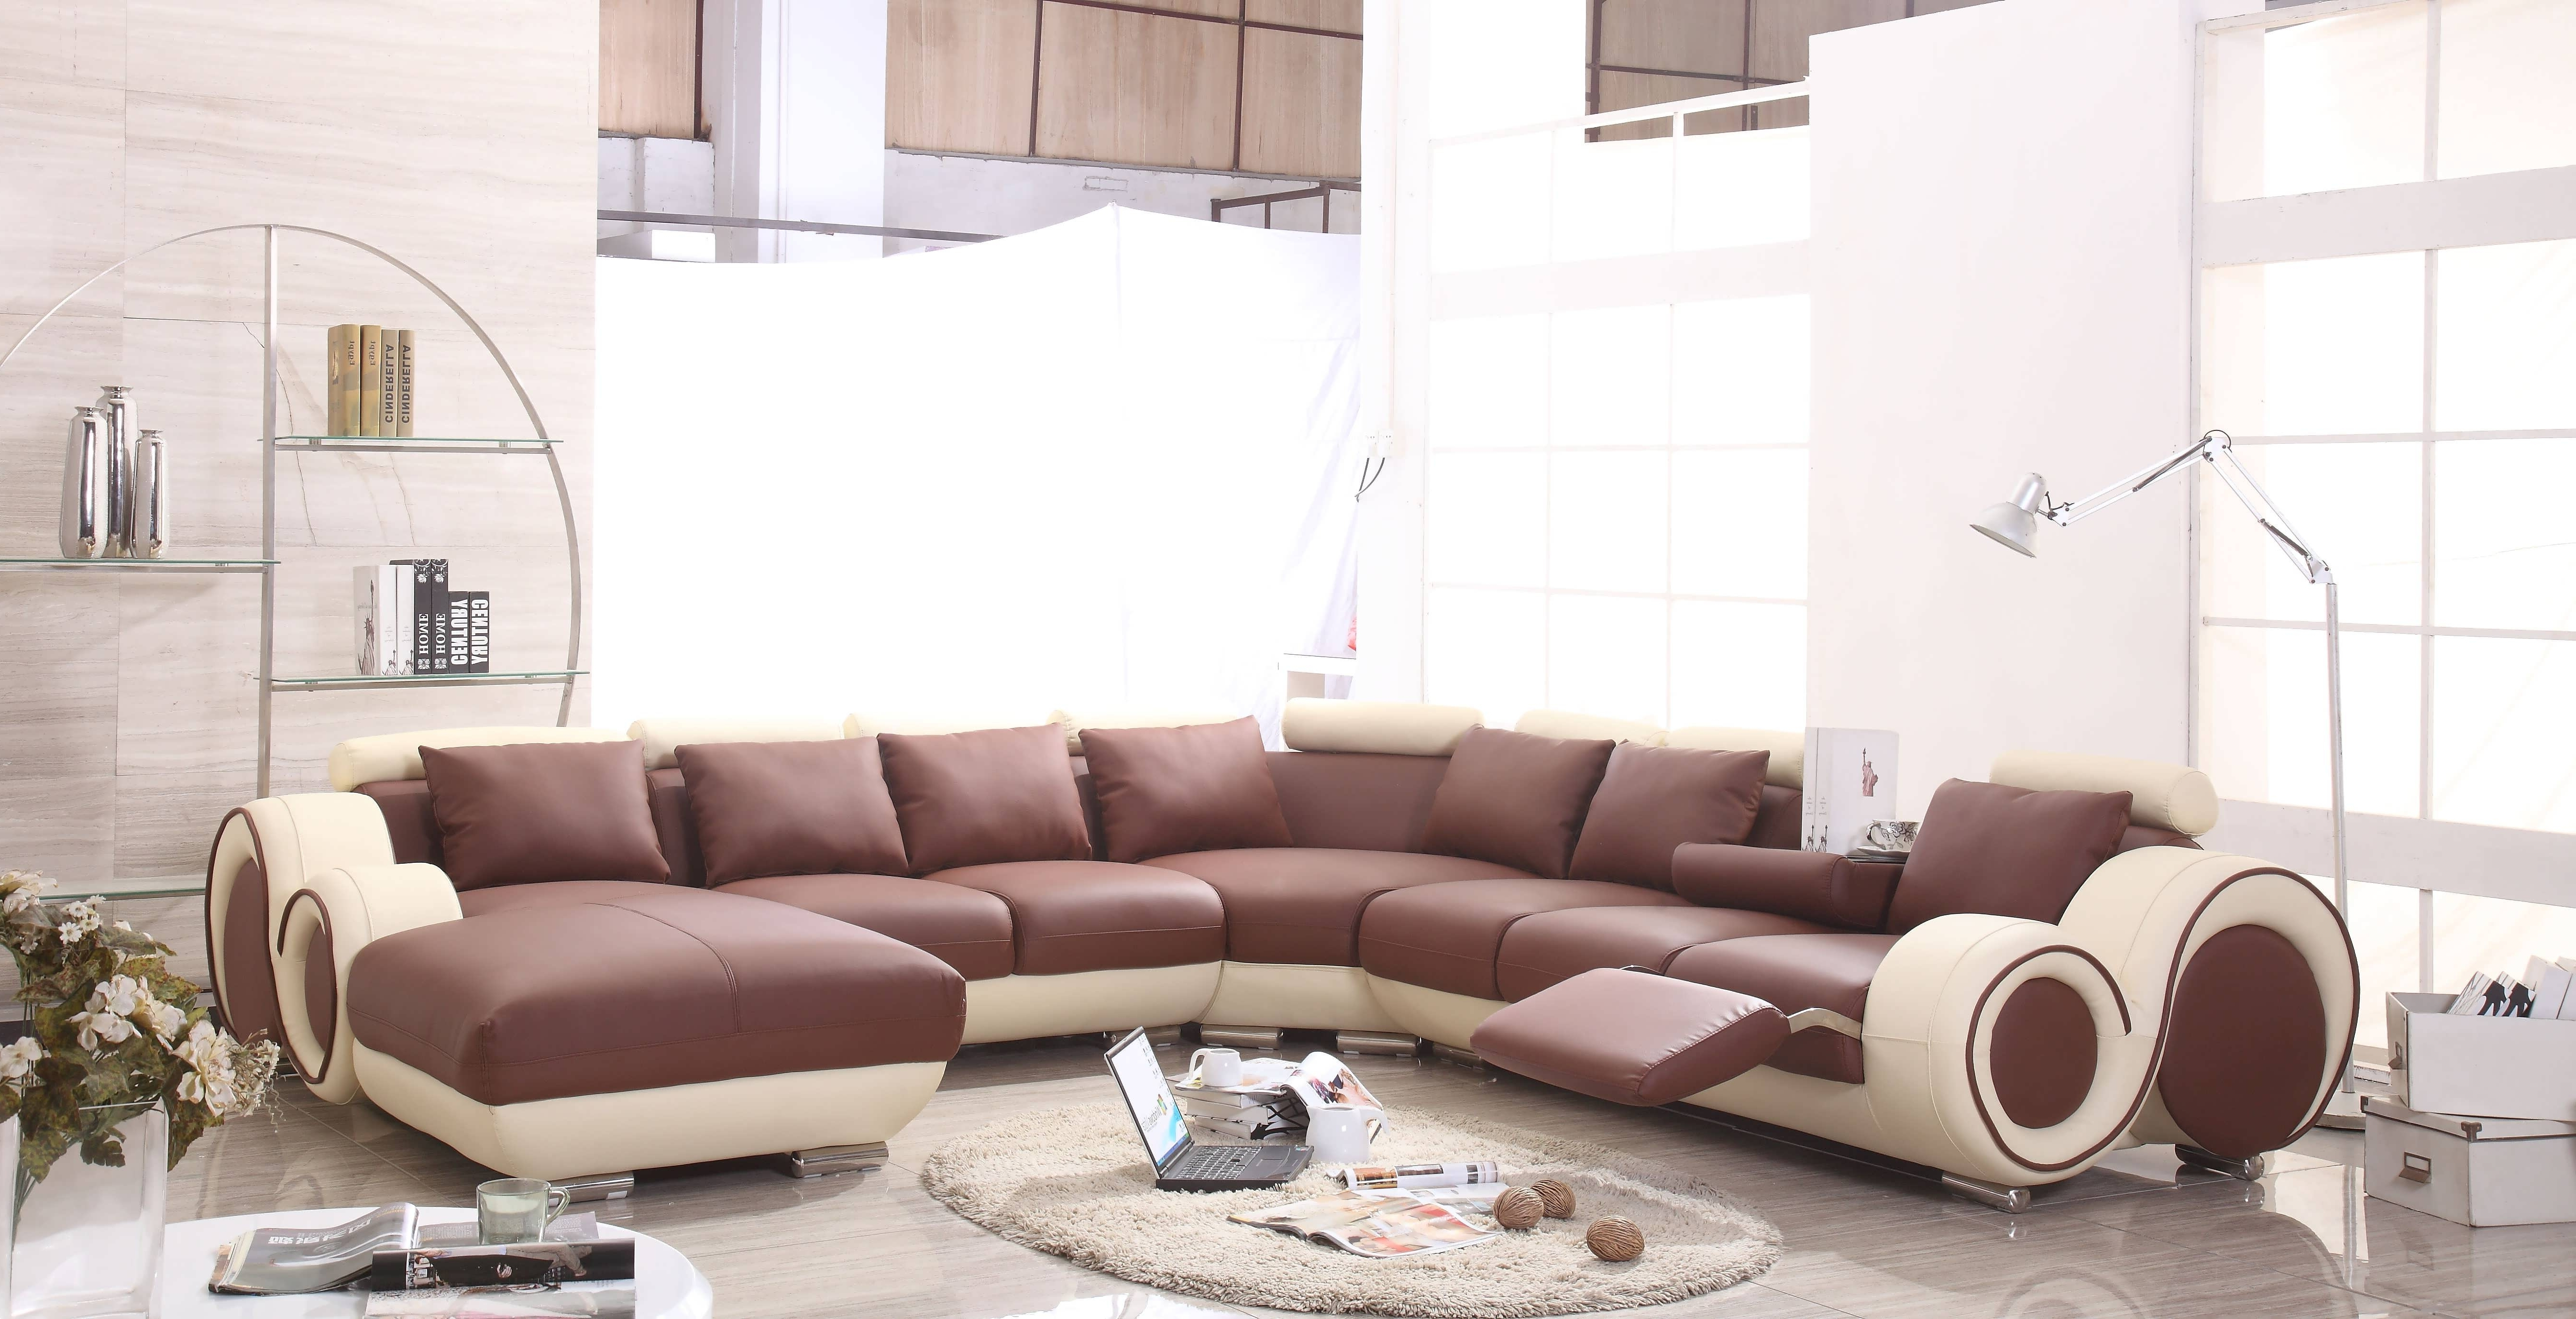 Double Chaise Sectionals Throughout Well Known Sofa : Grey Sectional Sofa Double Chaise Sectional Couches (View 12 of 15)